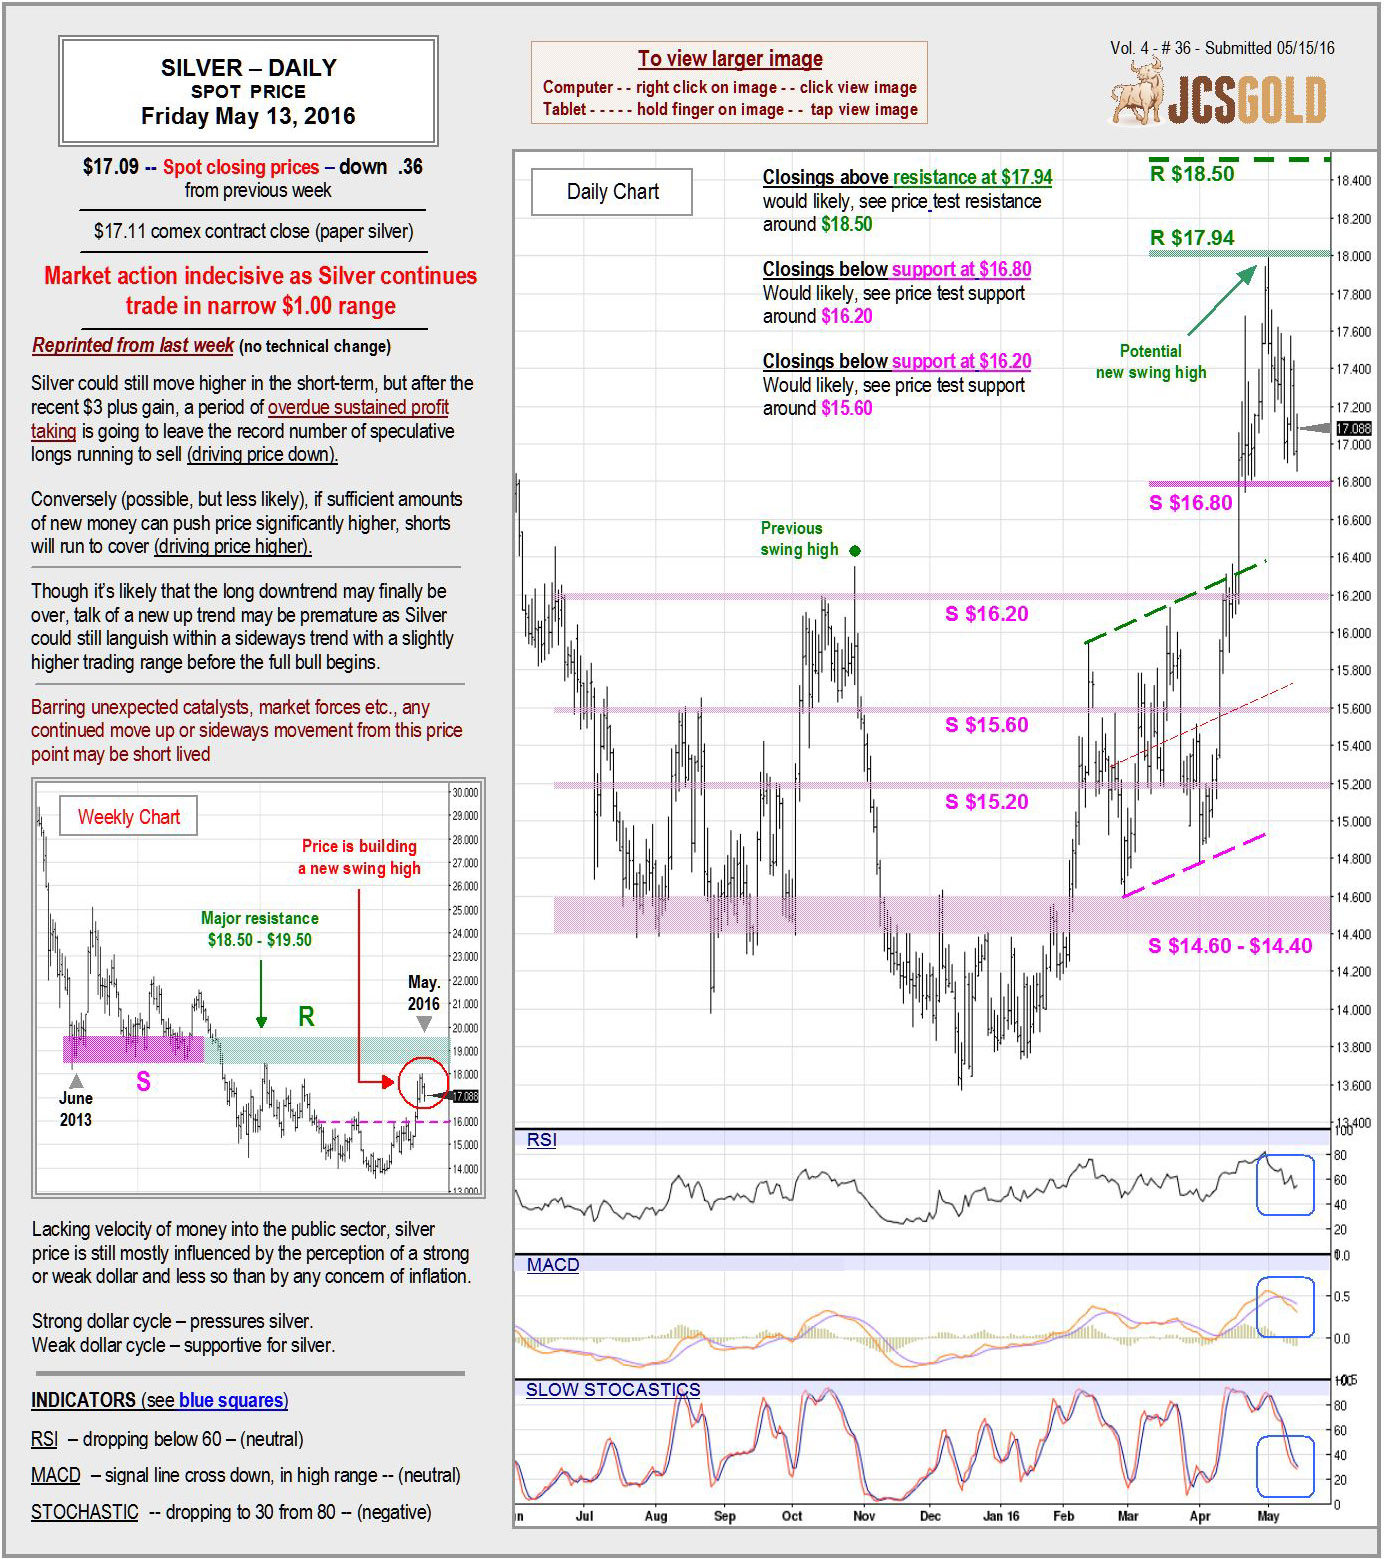 May 13, 2016 chart & commentary